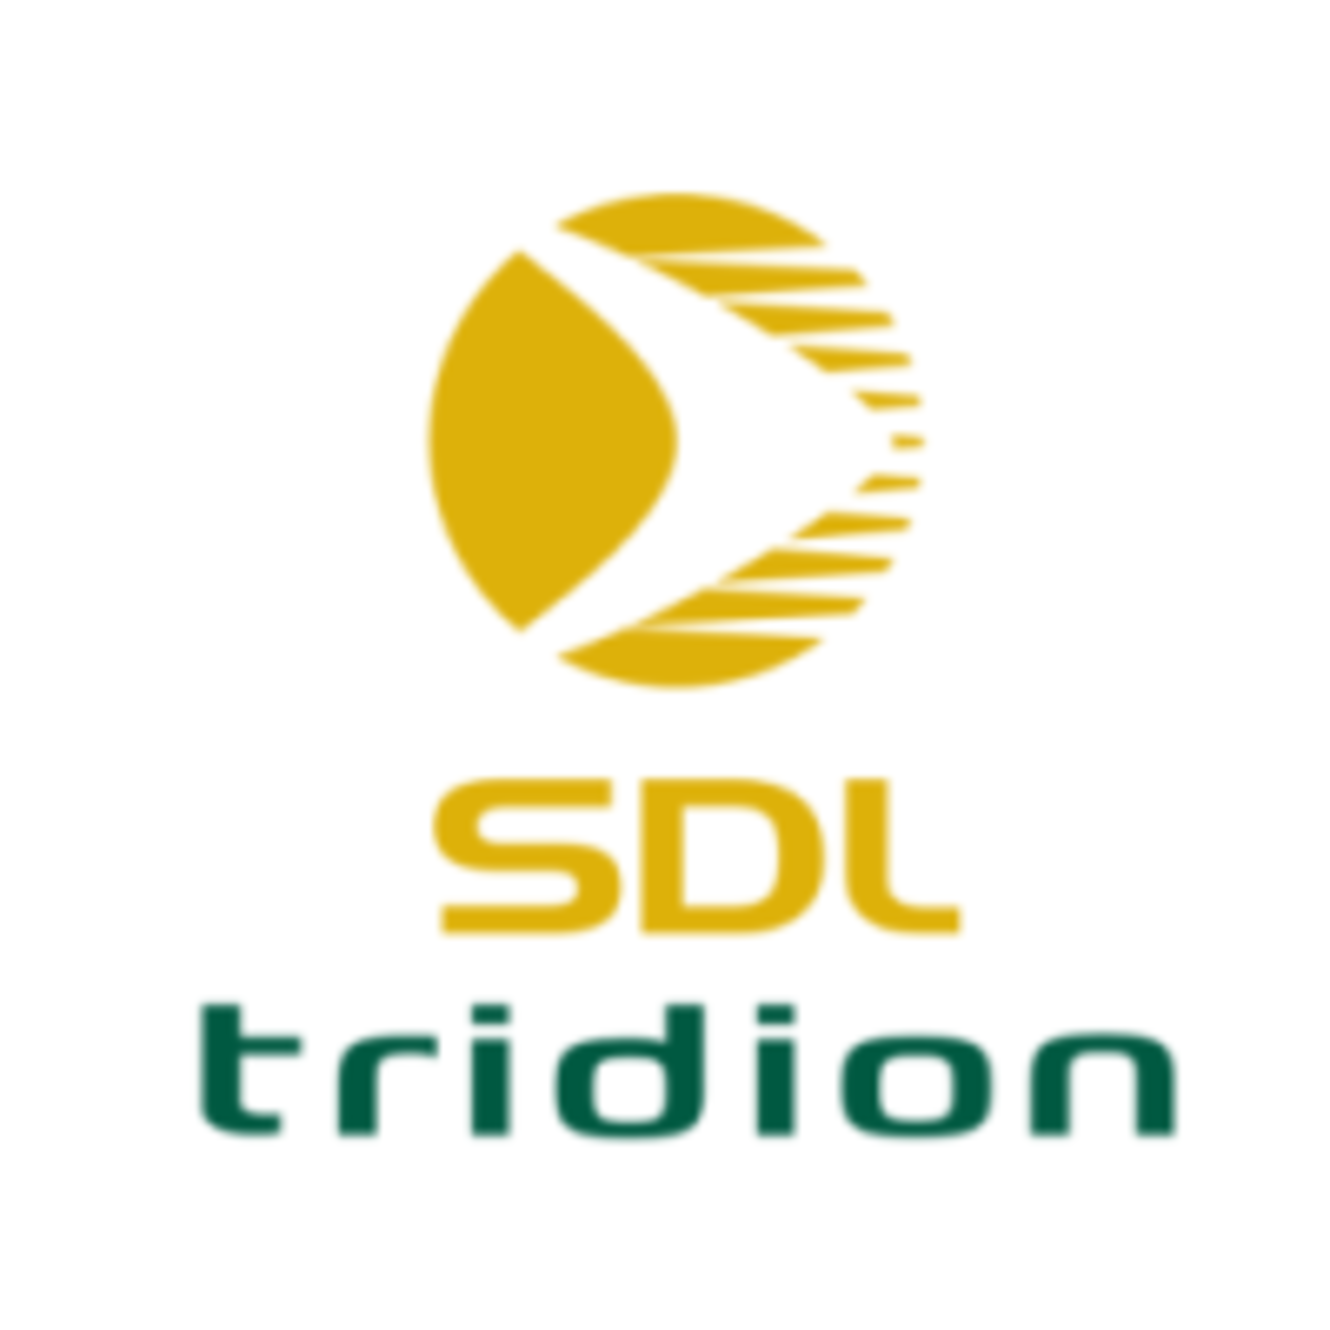 How to set Rights and Permissions using the SDL Tridion core service API